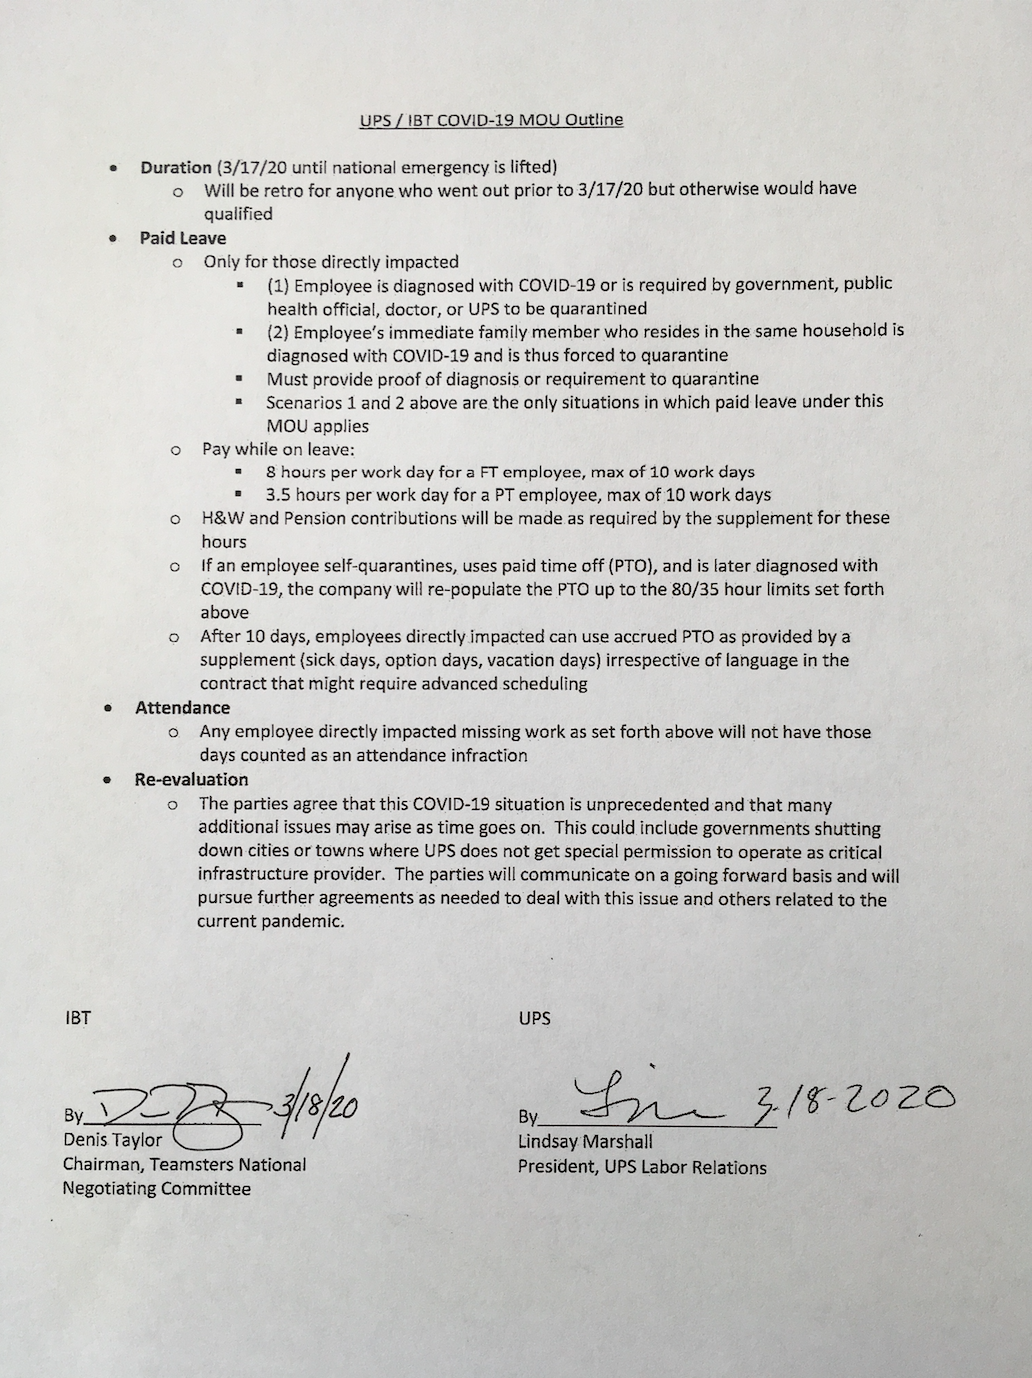 COVID19-UPS_AGREEMENT-3-18-20D.png